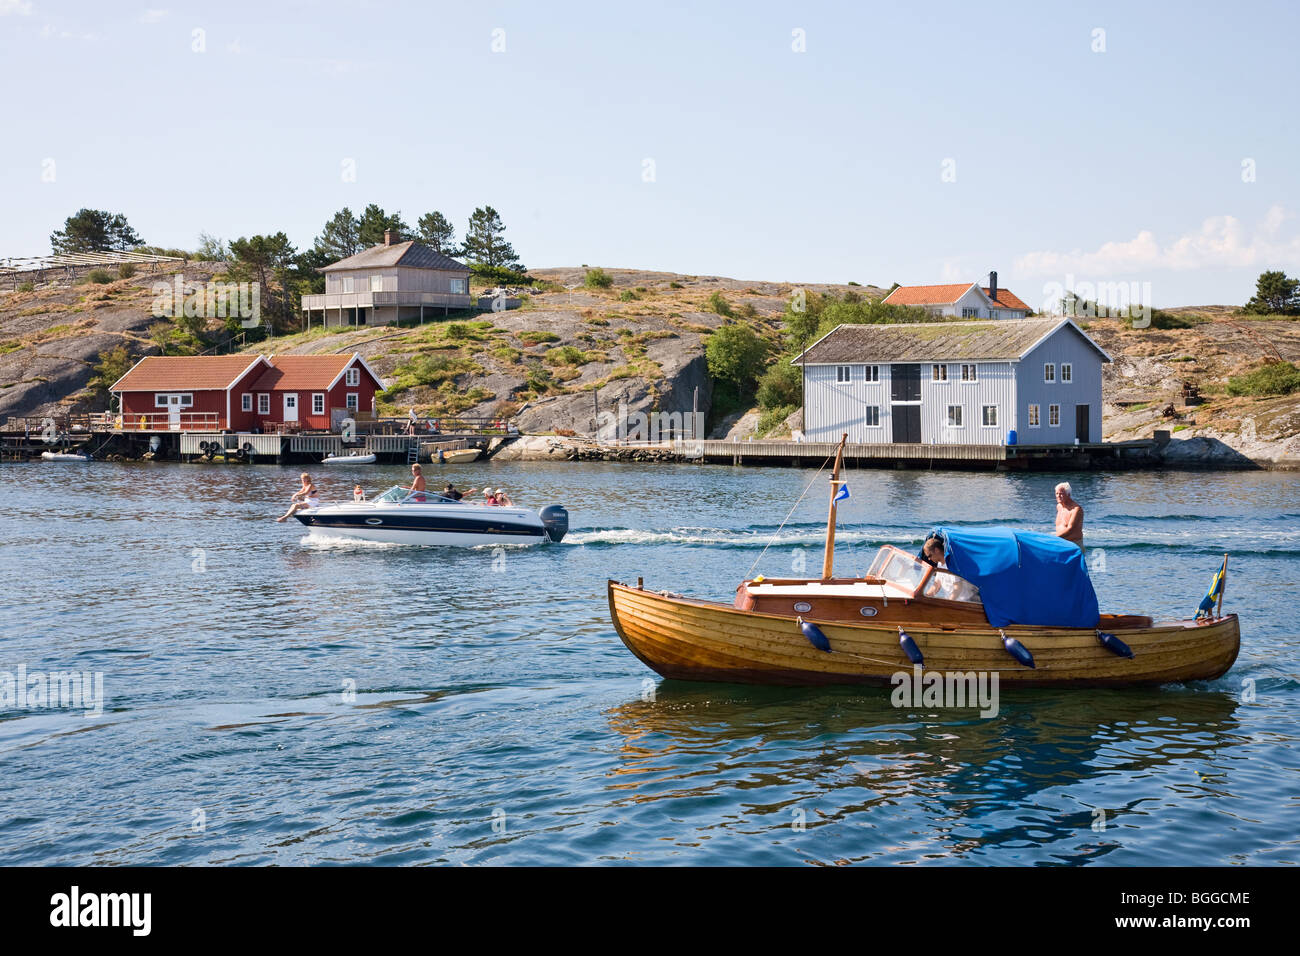 Motorboat on the way into the bay - Stock Image